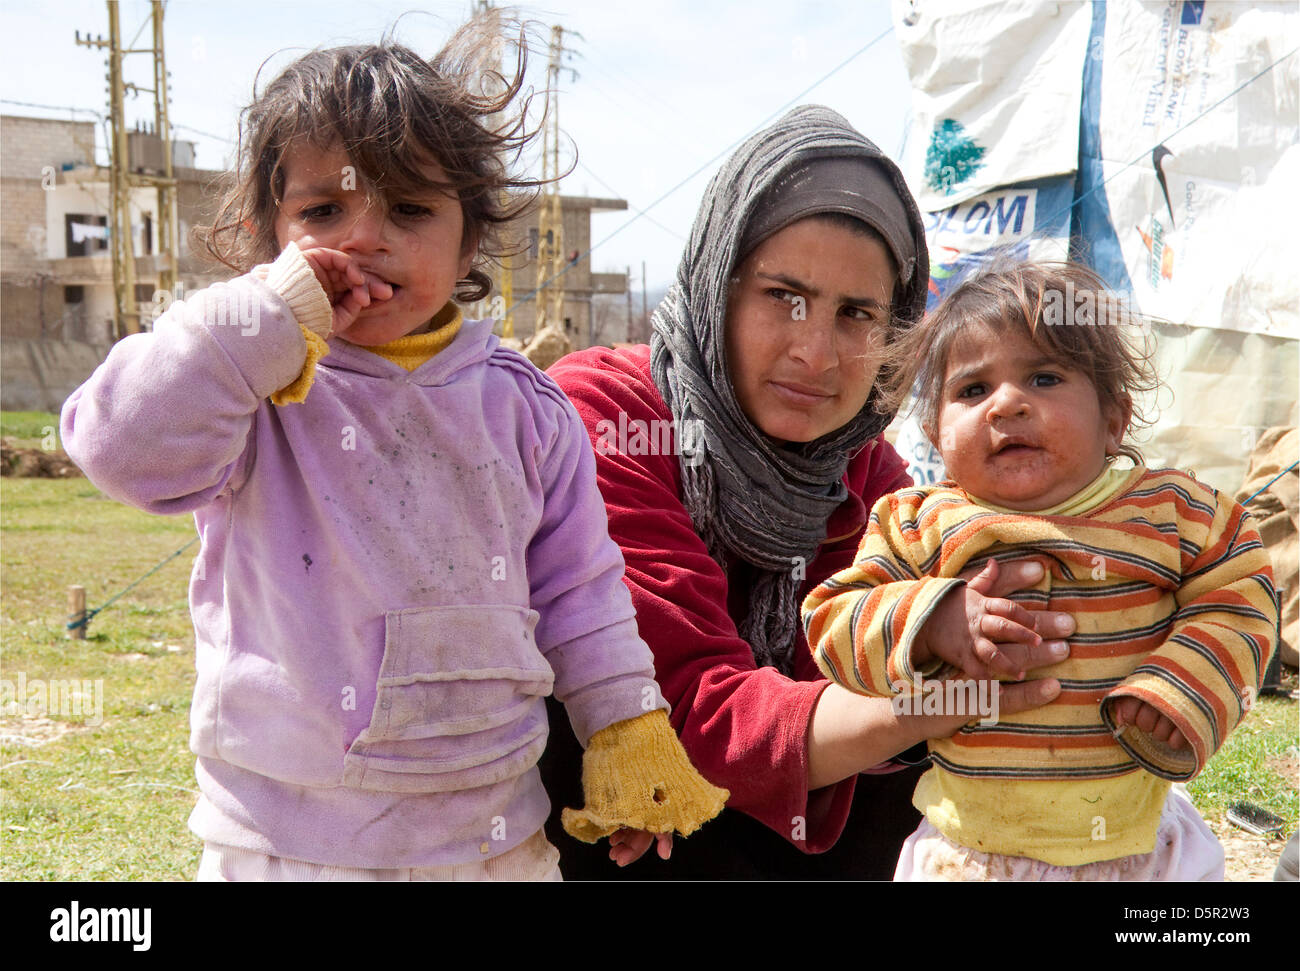 Syrian refugee family, near Bekaa Valley Lebanon - Stock Image